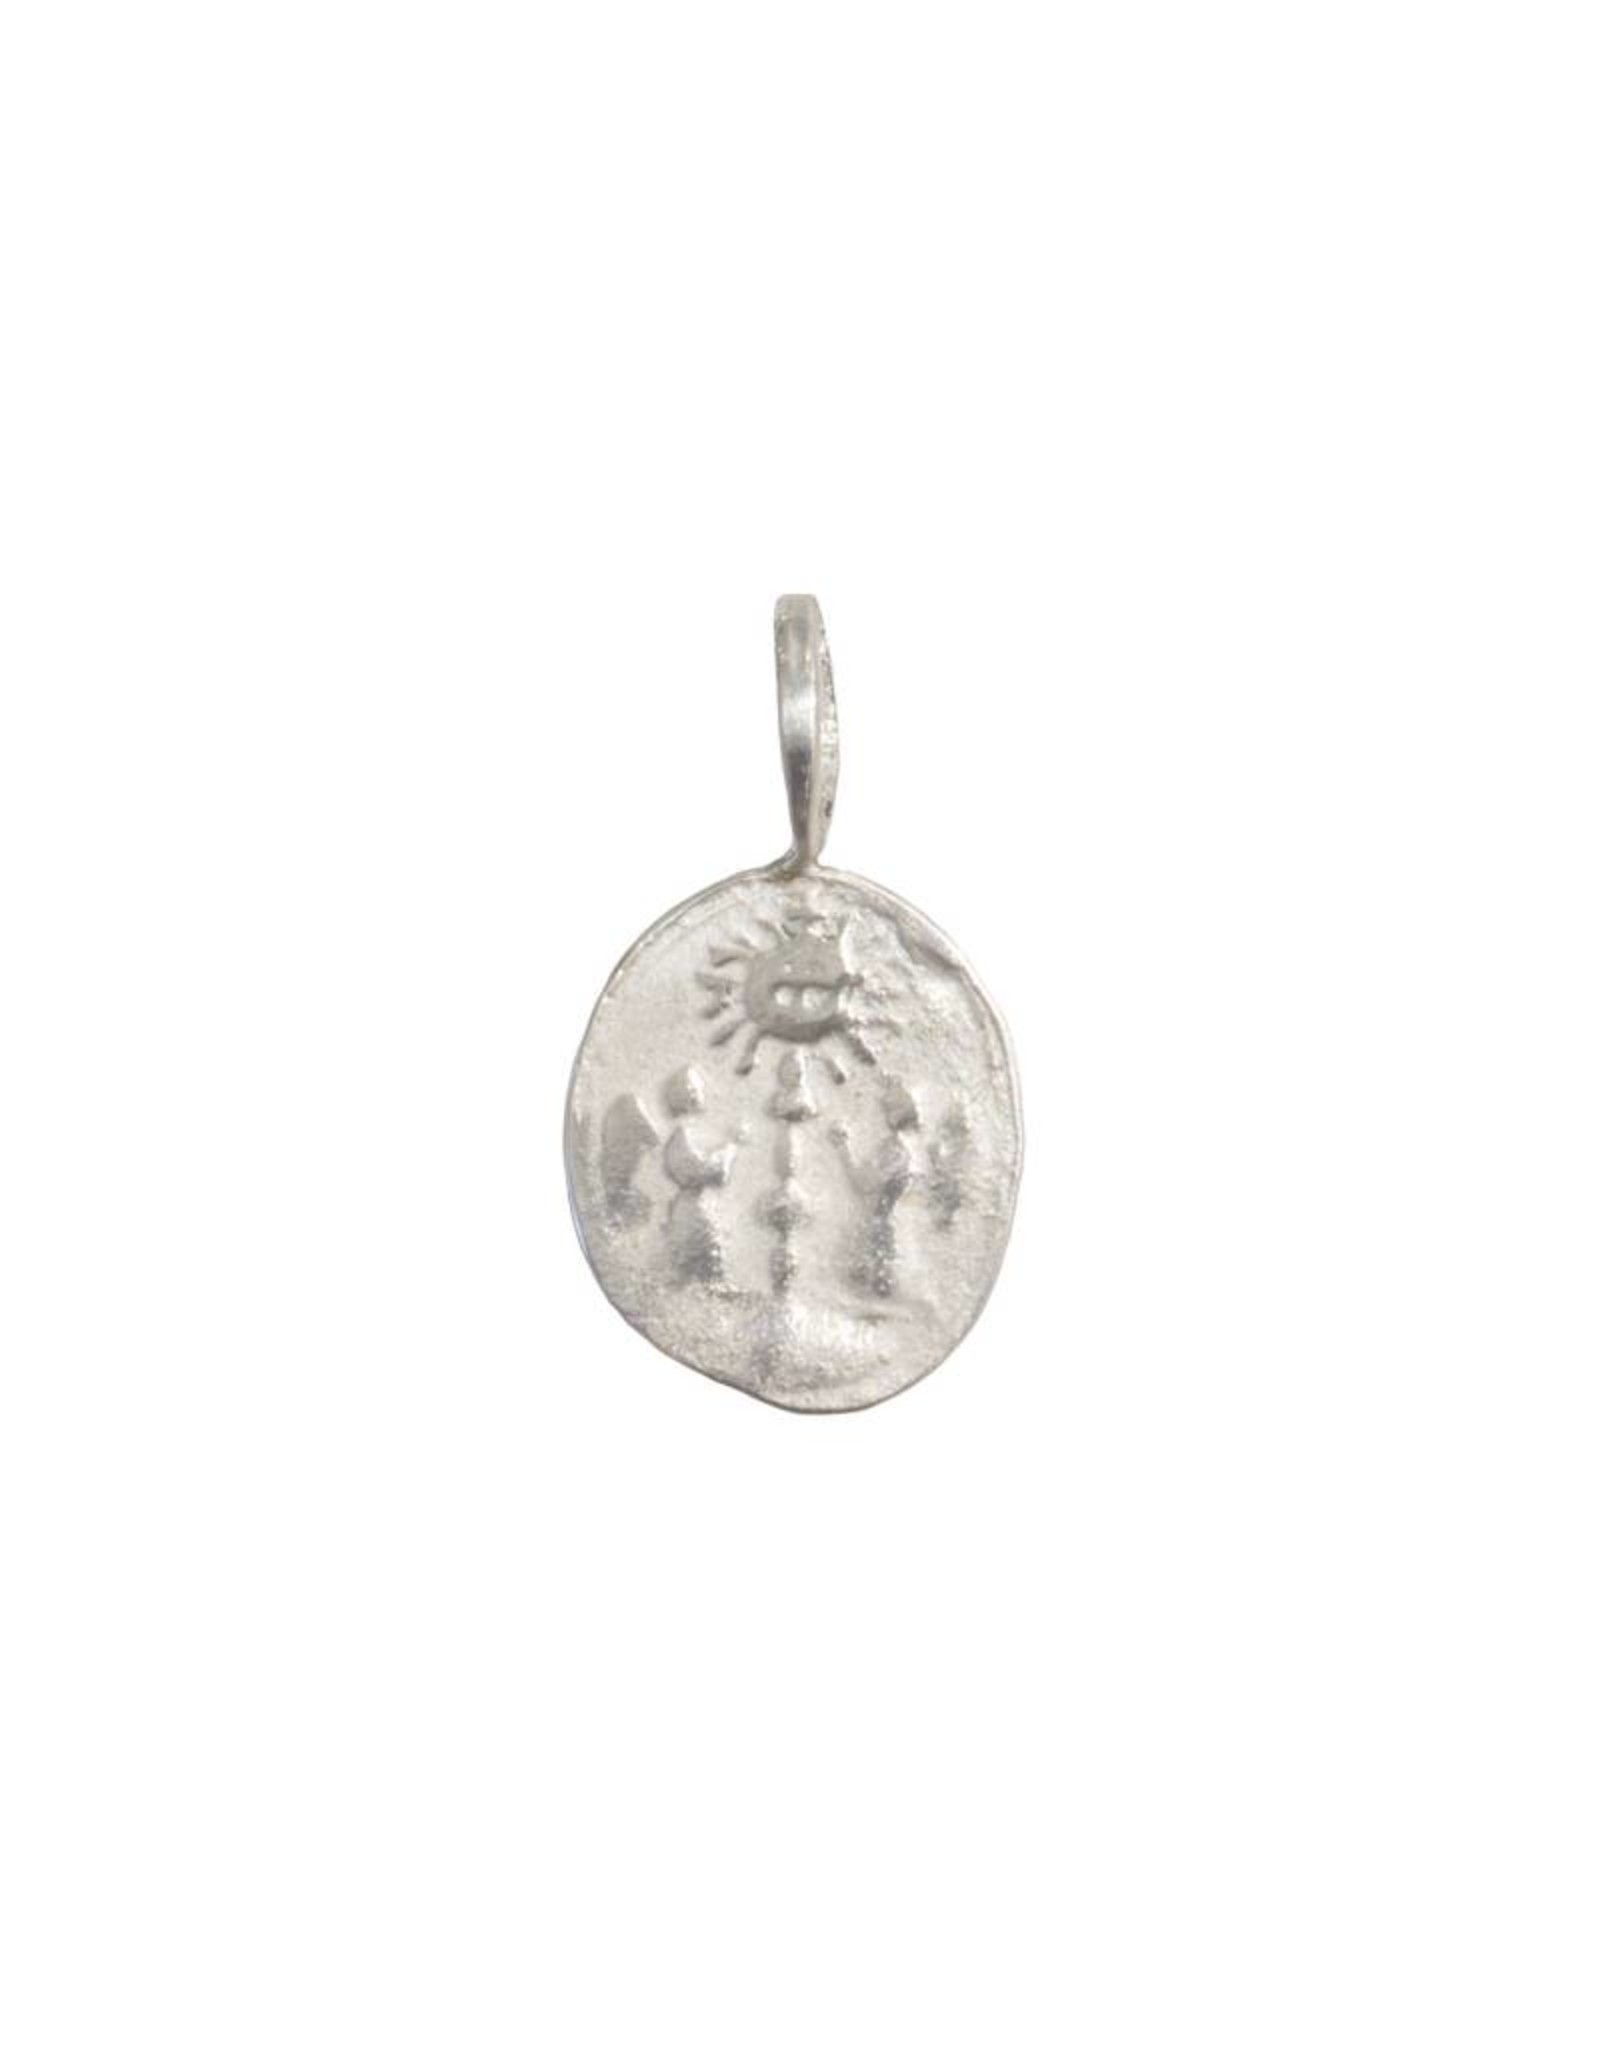 Robin Haley Jewelry Two Angels Artifact Necklace - Double-Sided